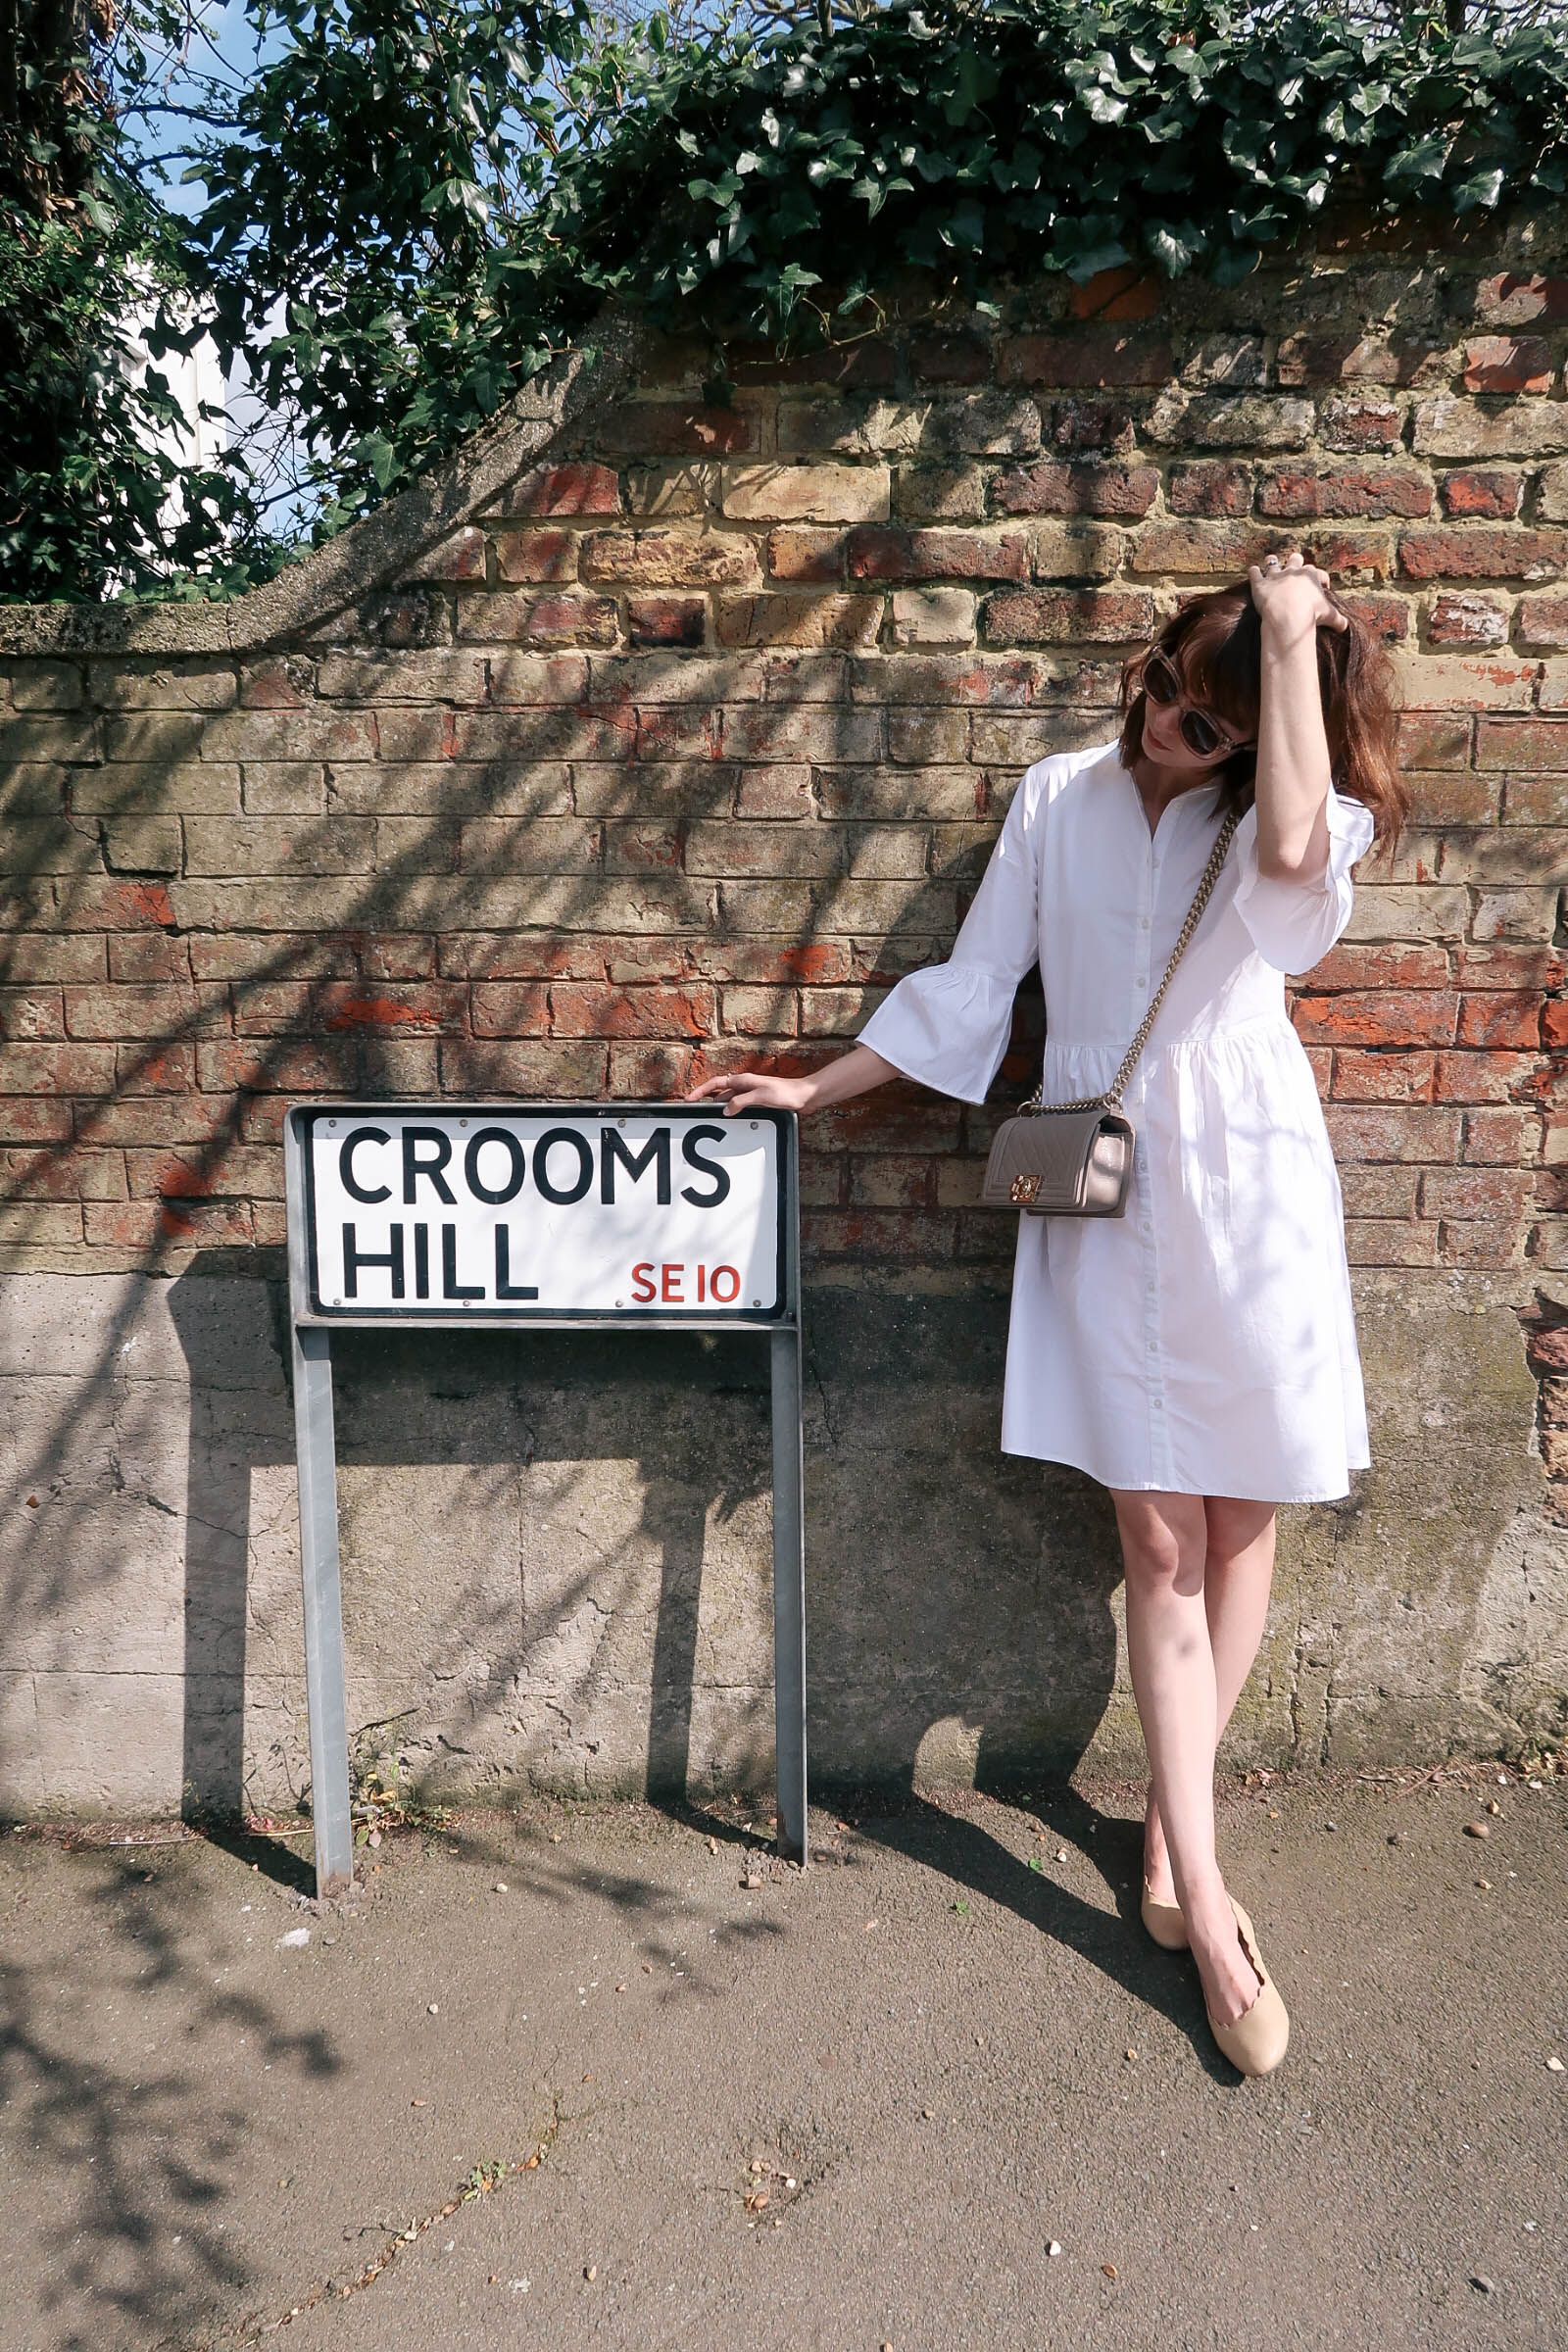 Crooms Hill | Greenwich Strolls | Sundays and Somedays